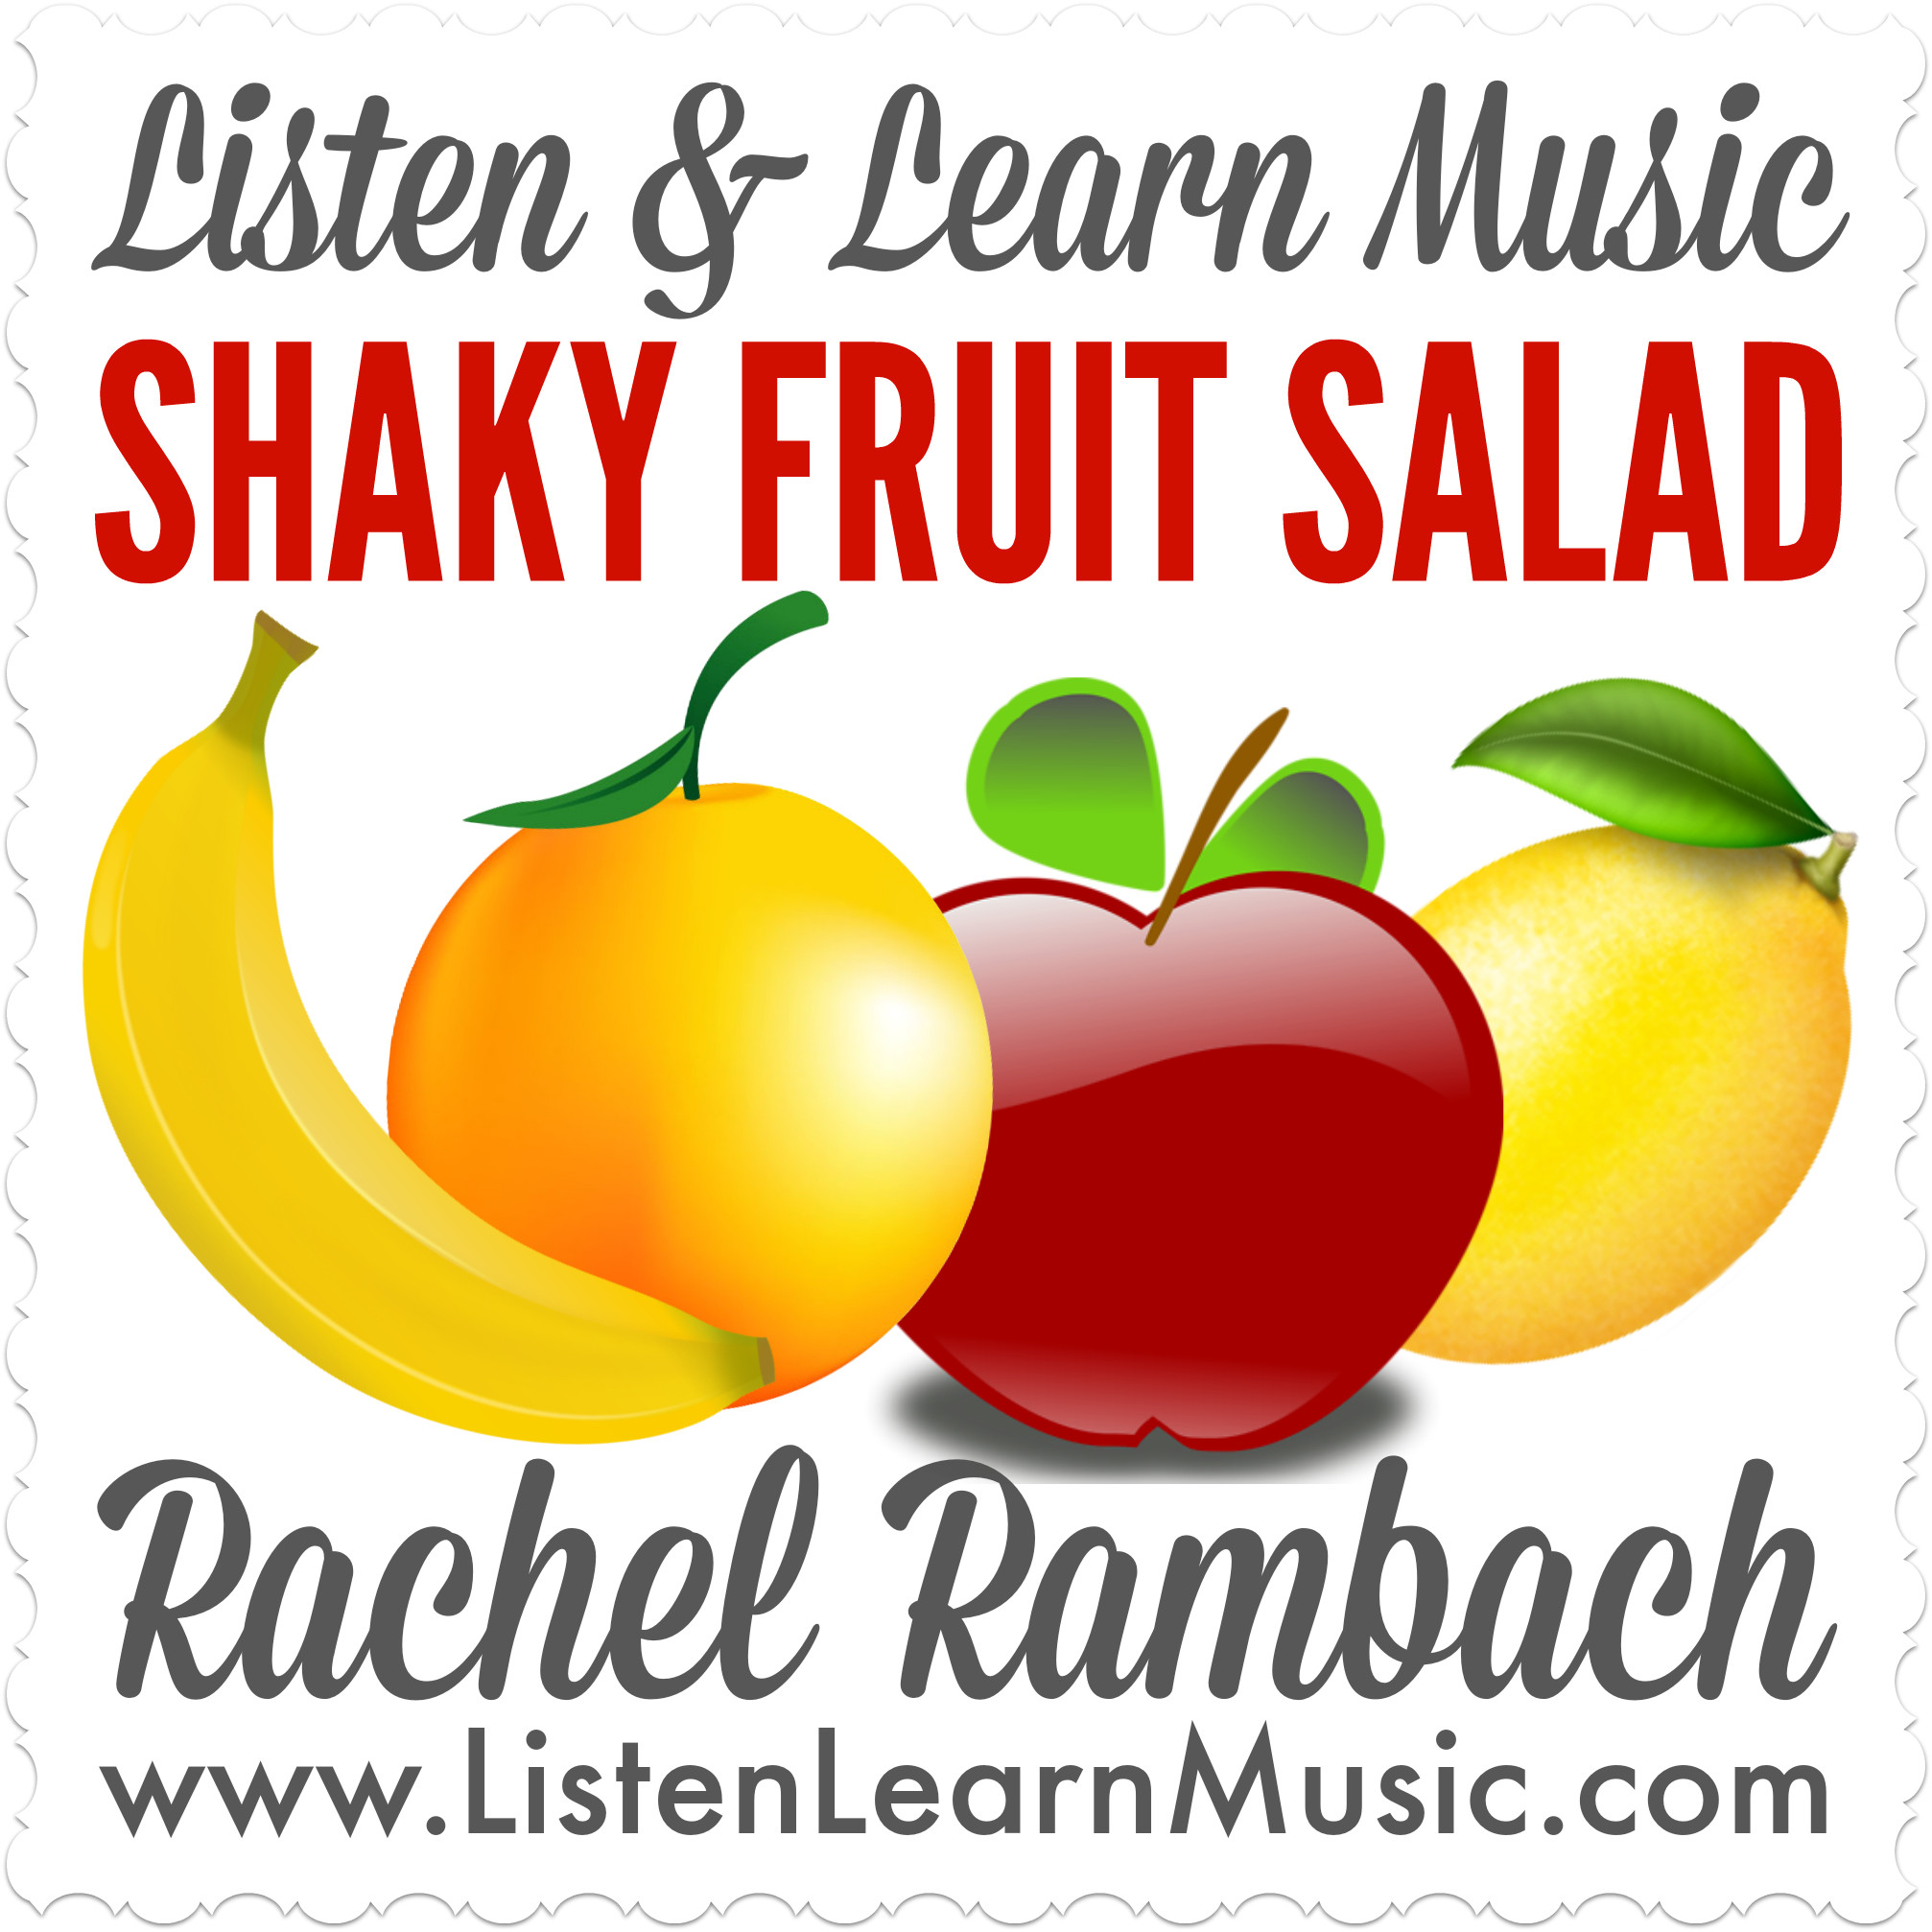 Achieving Goals in Music Therapy with Fruit Shakers